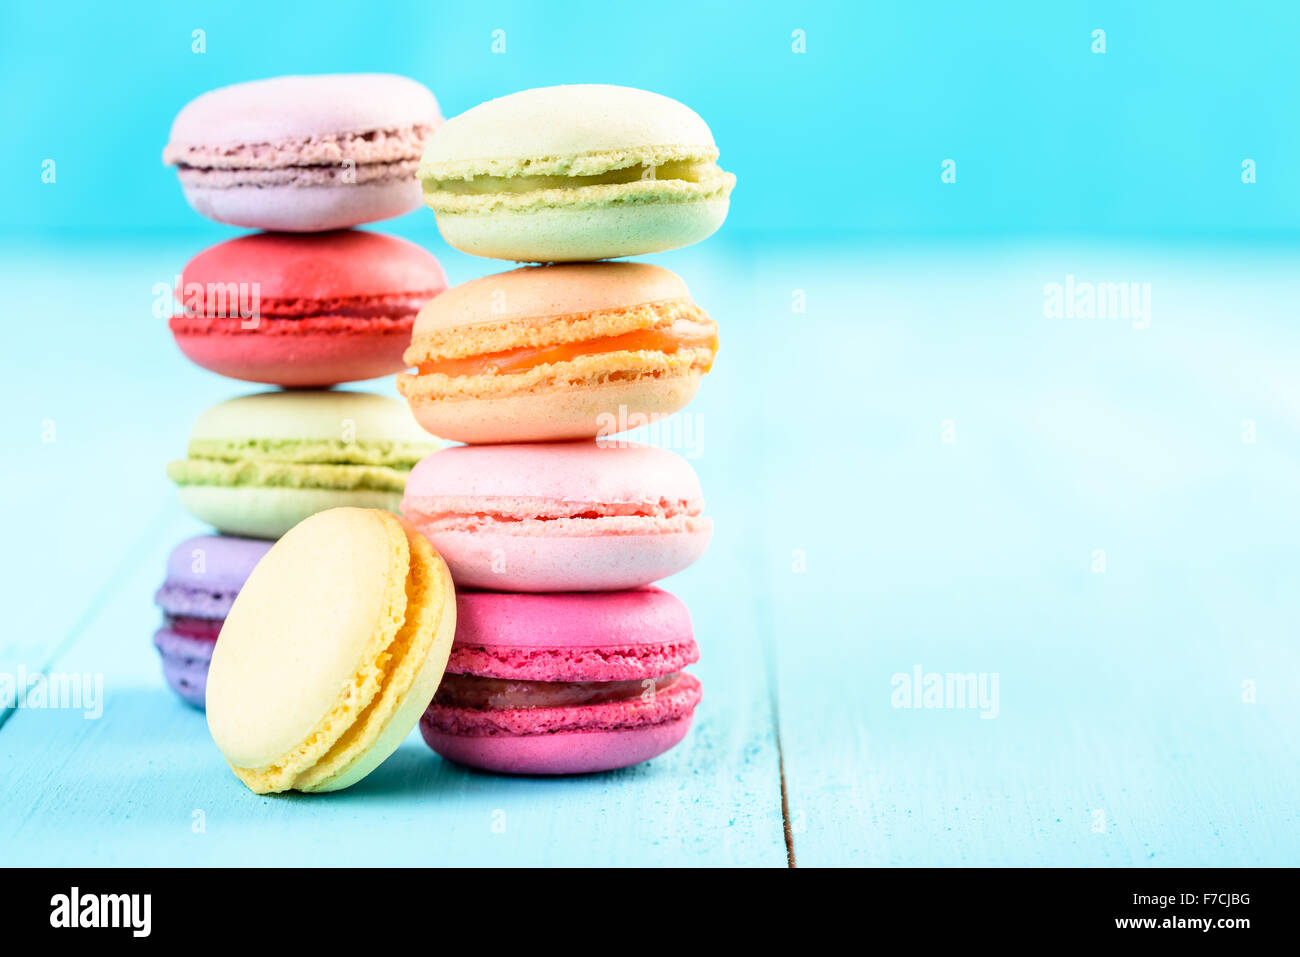 French Macaroons On Blue Background - Stock Image